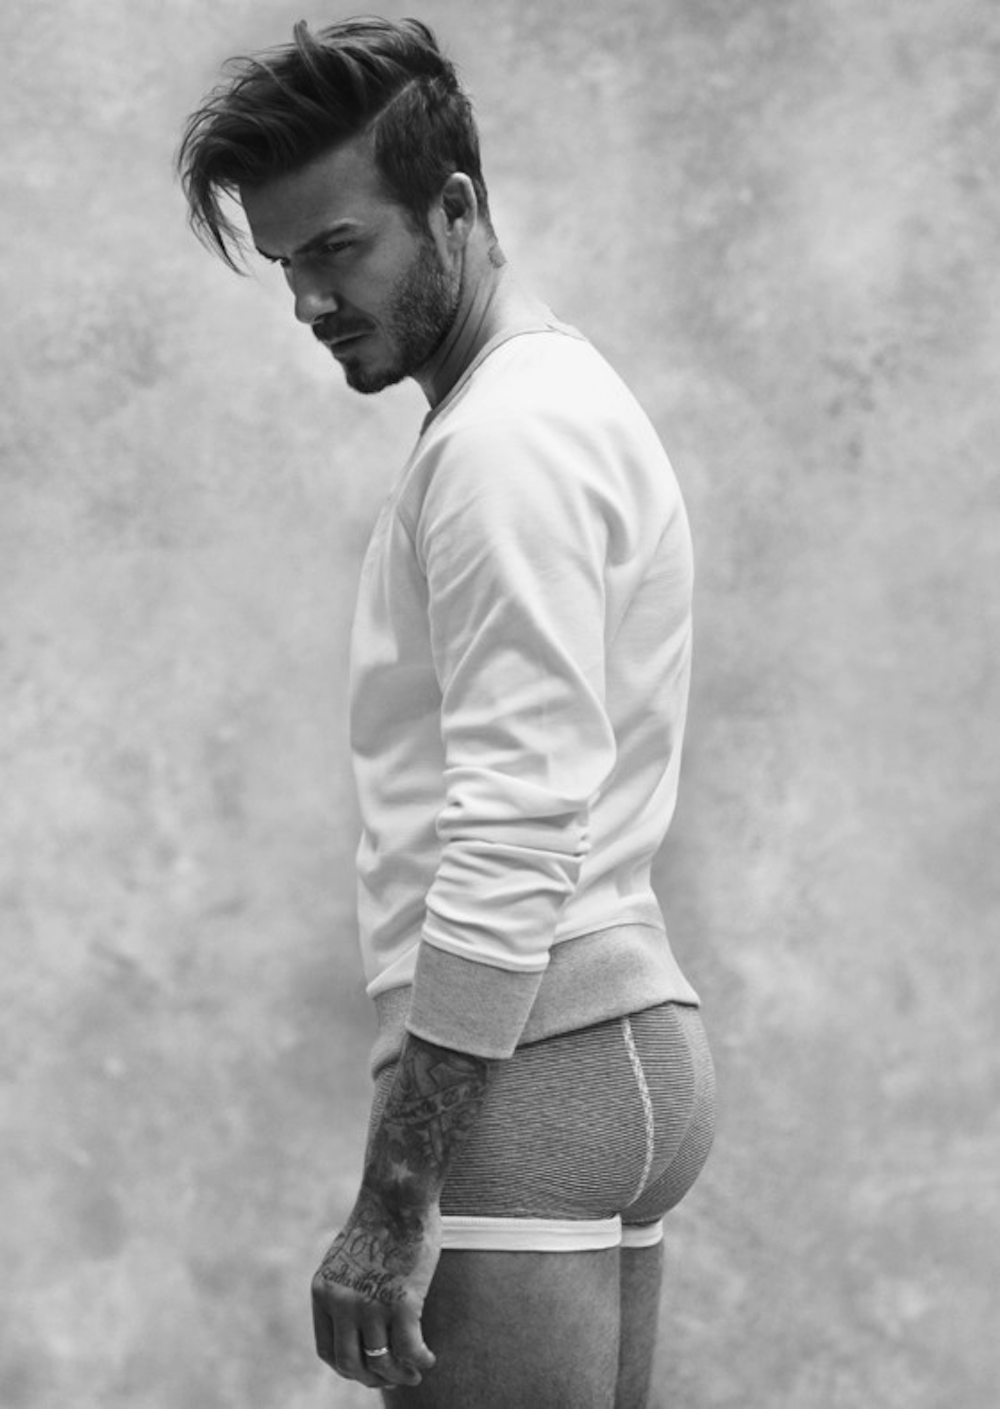 David Beckham set hearts aflutter when his new H&M underwear advert was released on the same day that he took part in a live Twitter chat with fans. The advert sees the topless football star.